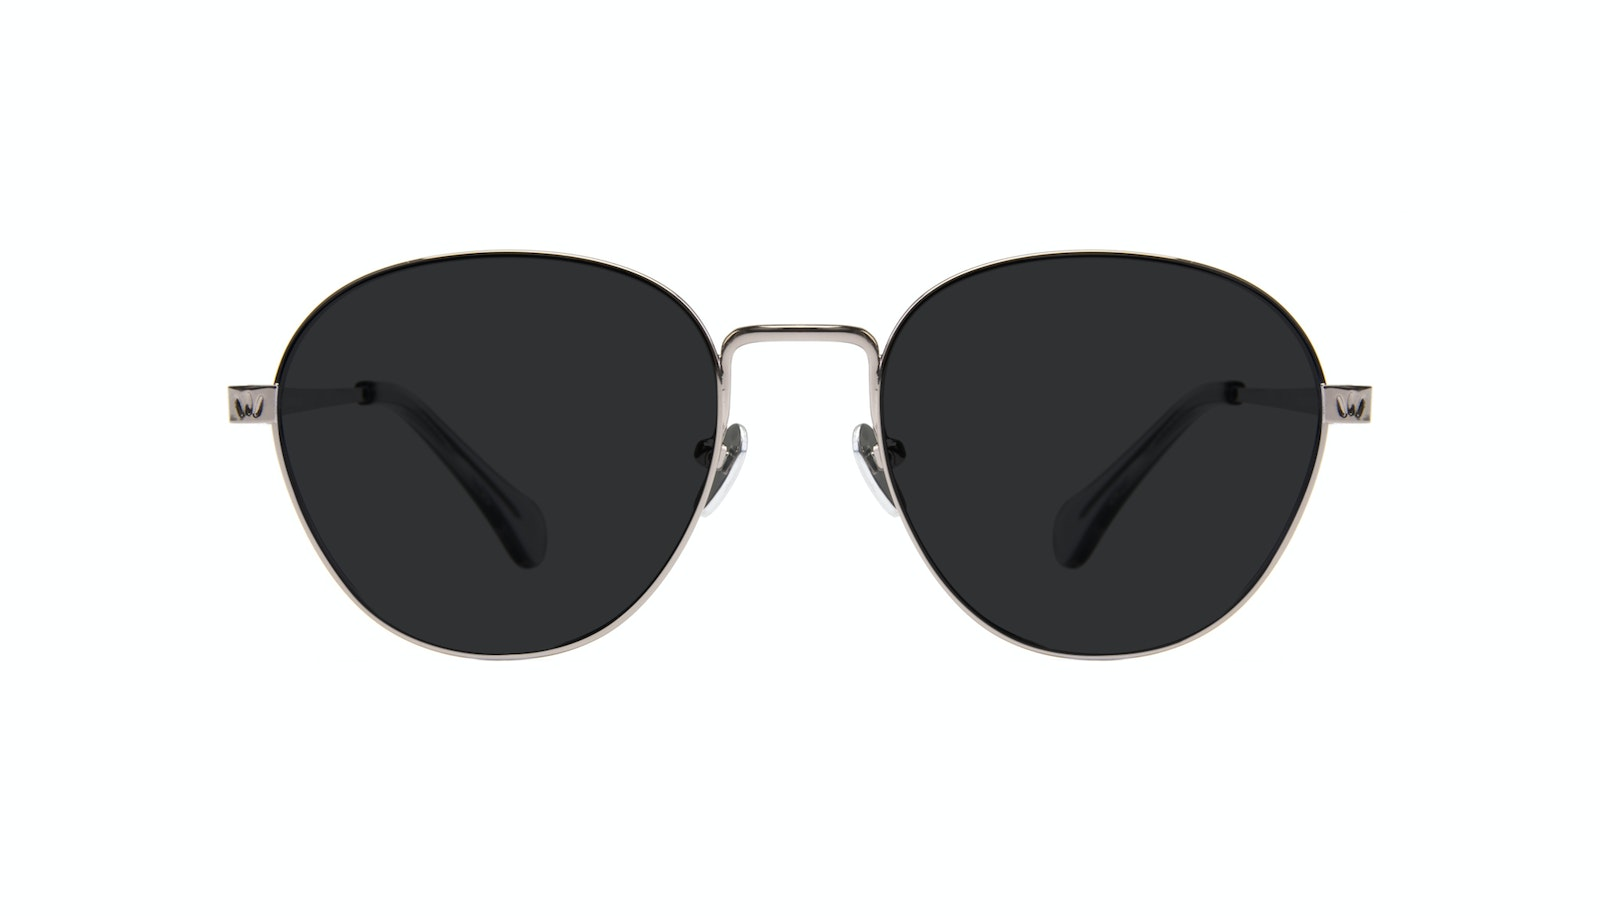 Affordable Fashion Glasses Round Sunglasses Women Brace Silver